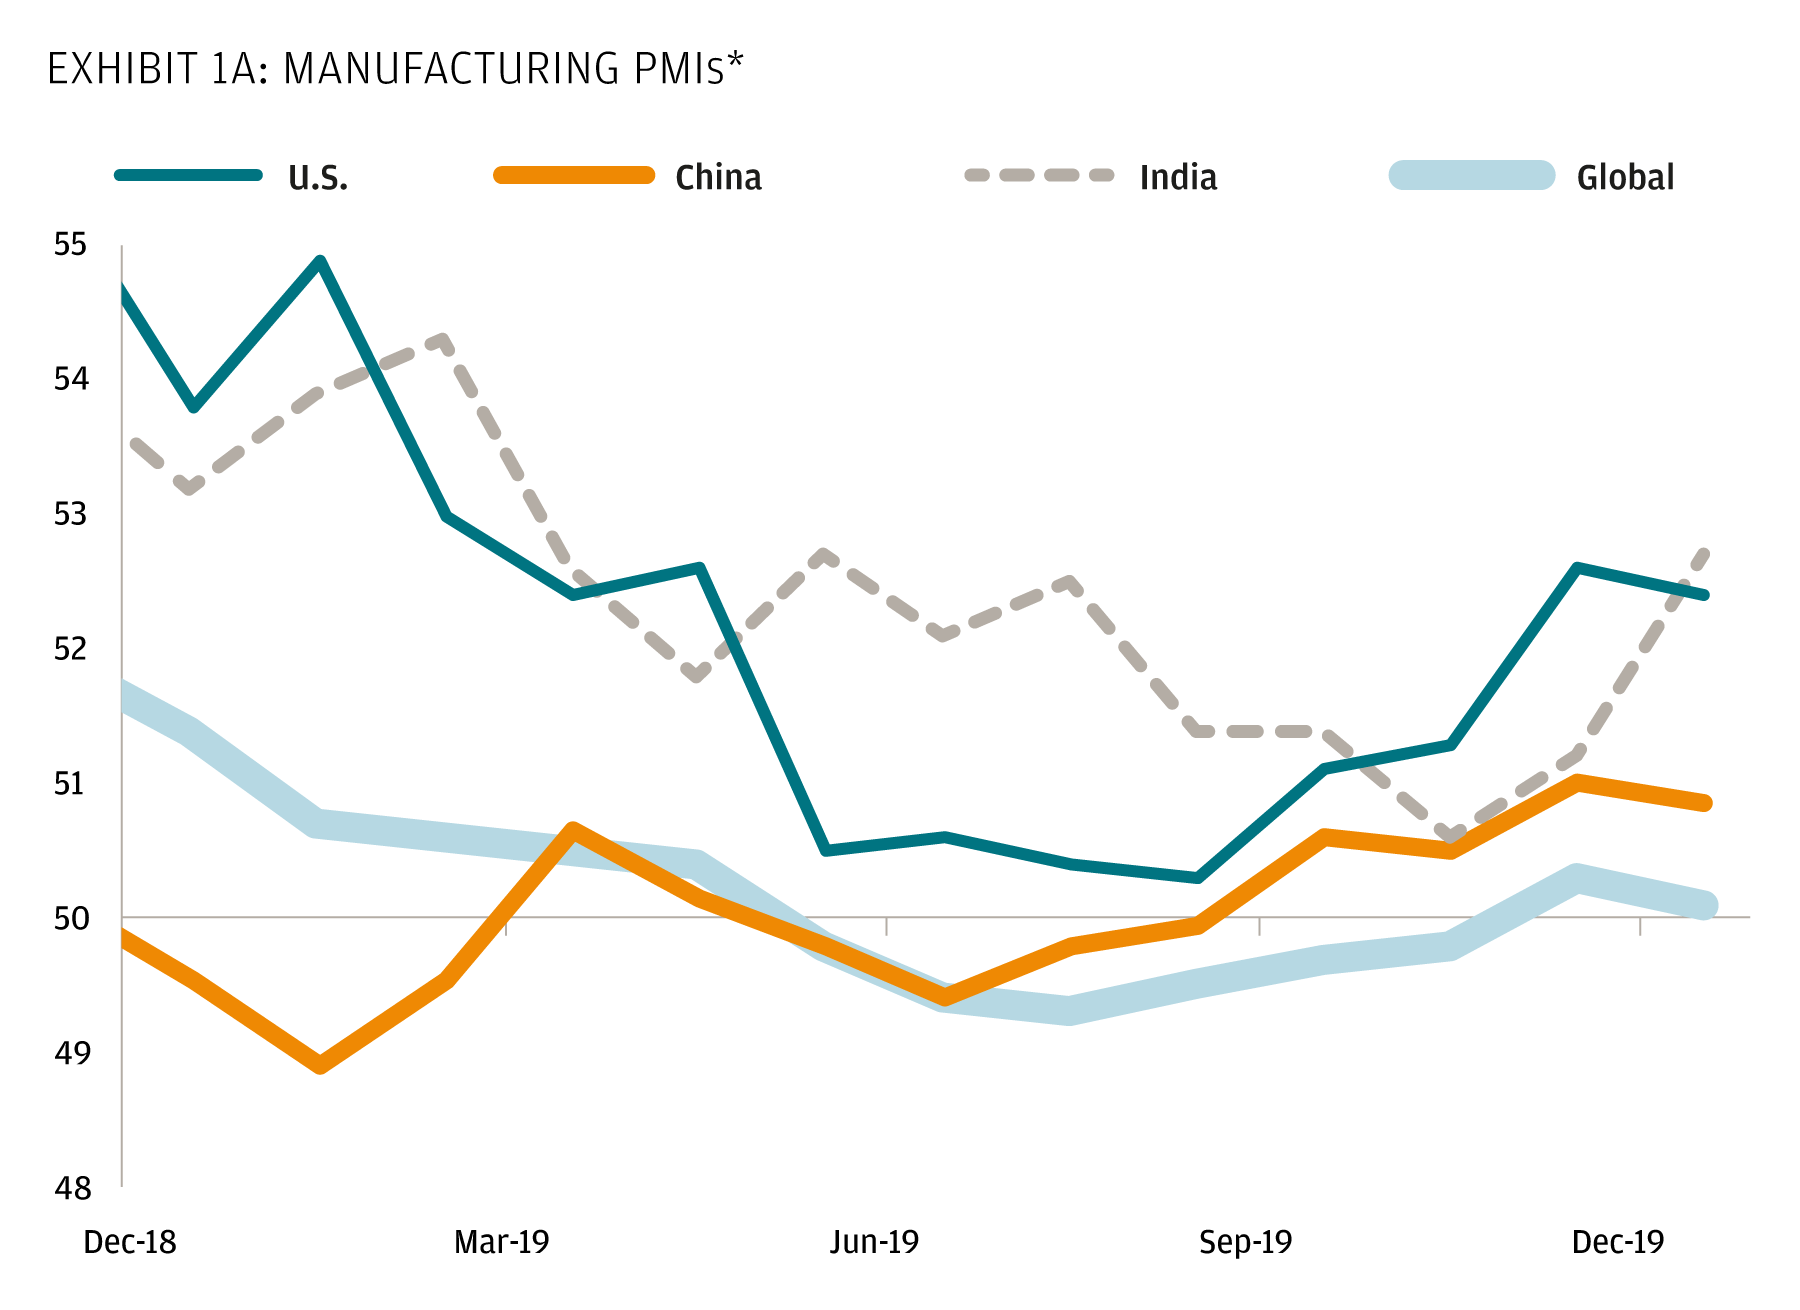 Displaying the U.S., China, India, and Global Manufacturing Purchasing Managers' Indices